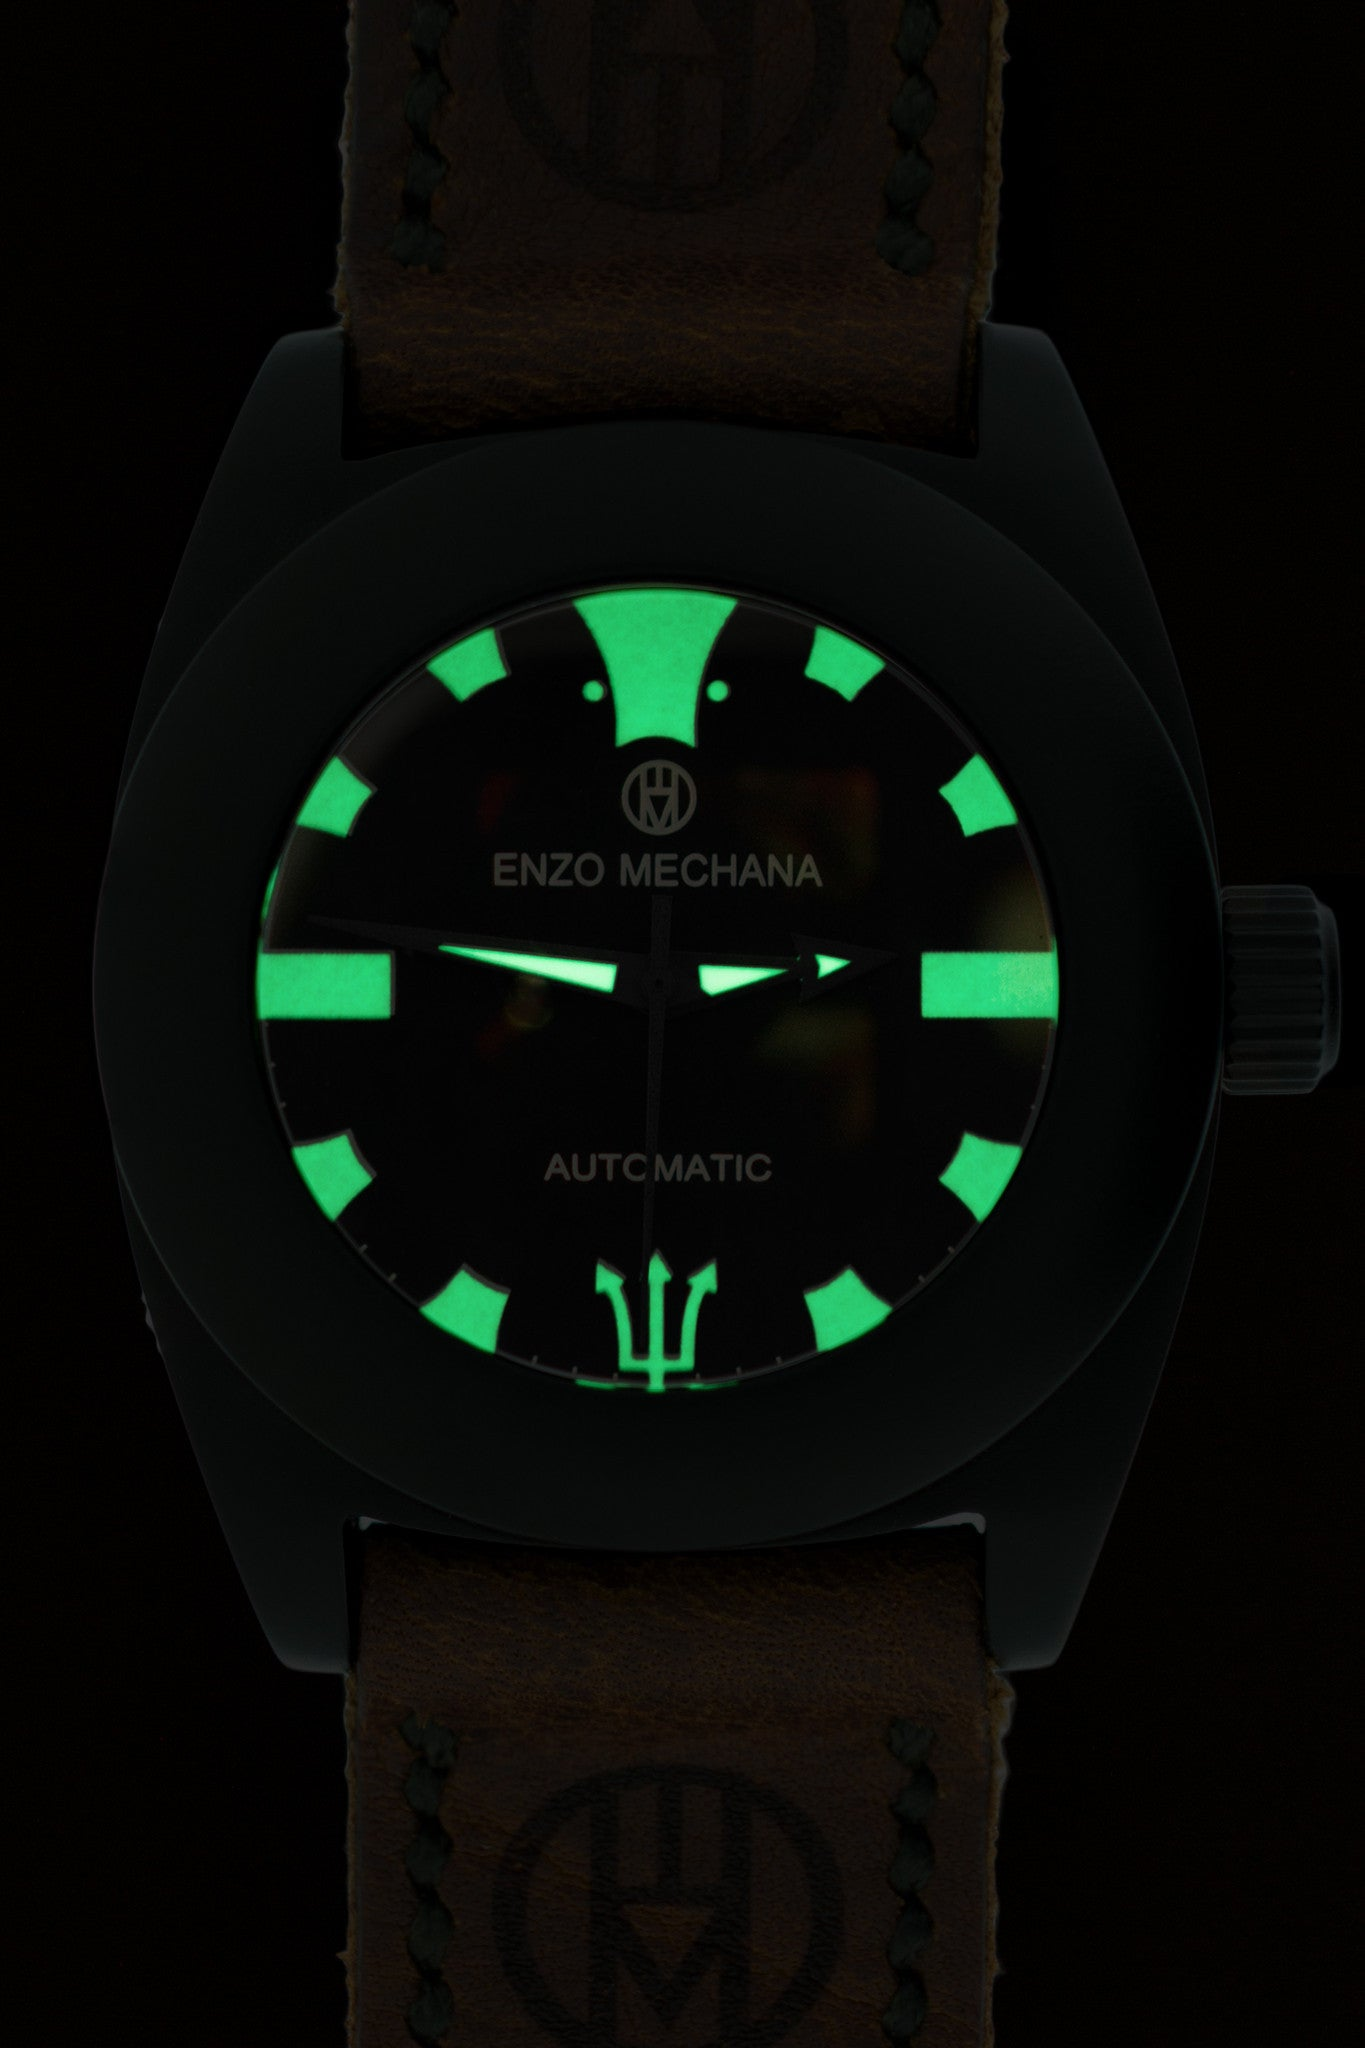 Enzo Mechana MARE NERO Limited Edition Automatic Watch